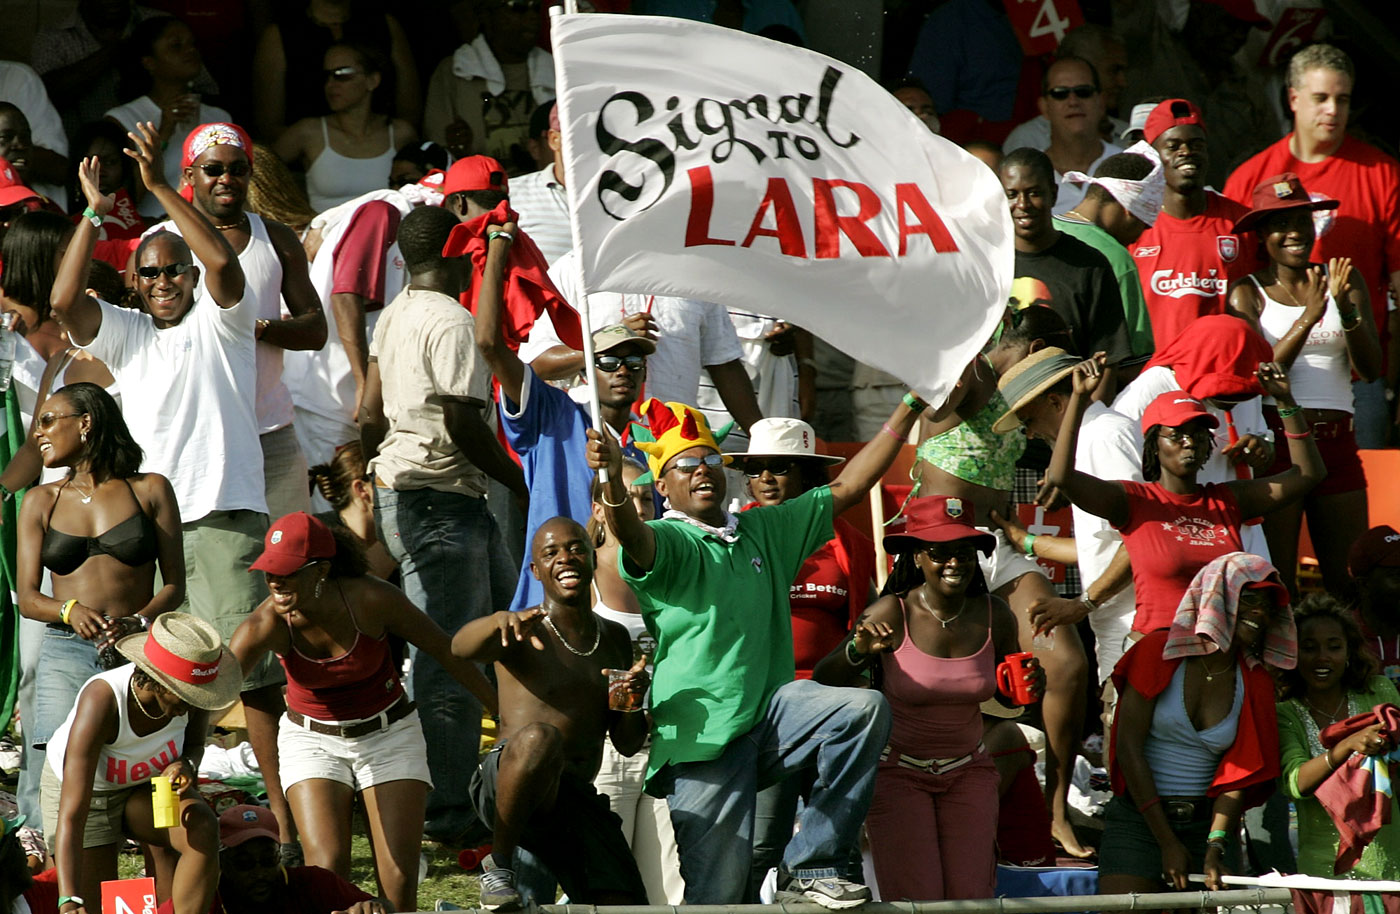 Bajan barracking: the Barbados crowd took a while to warm up to Lara, unimpressed by his decision to send a nightwatchman ahead of himself in both innings